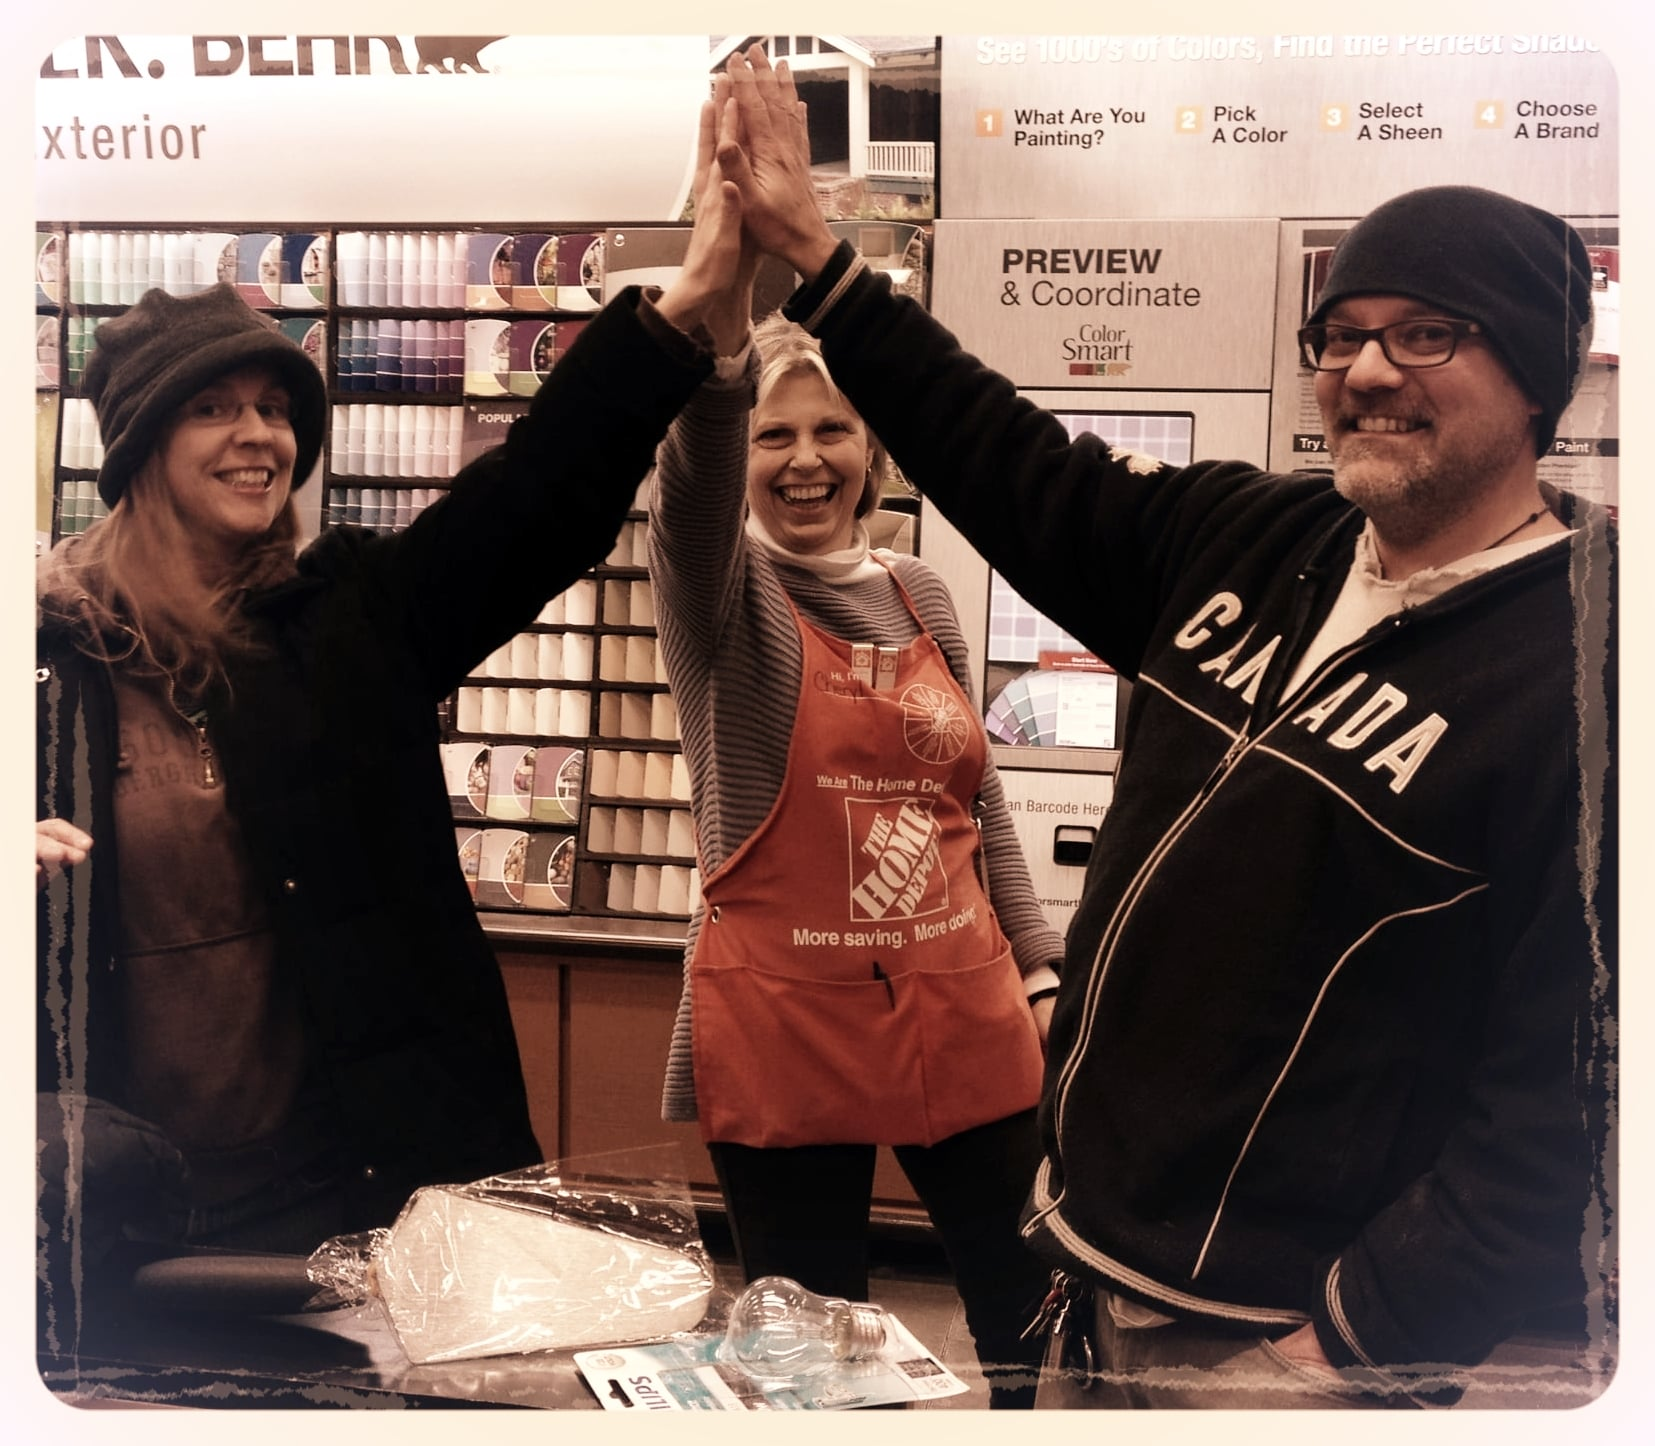 Our favorite high vibe Home Depot employee and friend, Cheryl, has cheerfully seen us through a few fixer uppers.